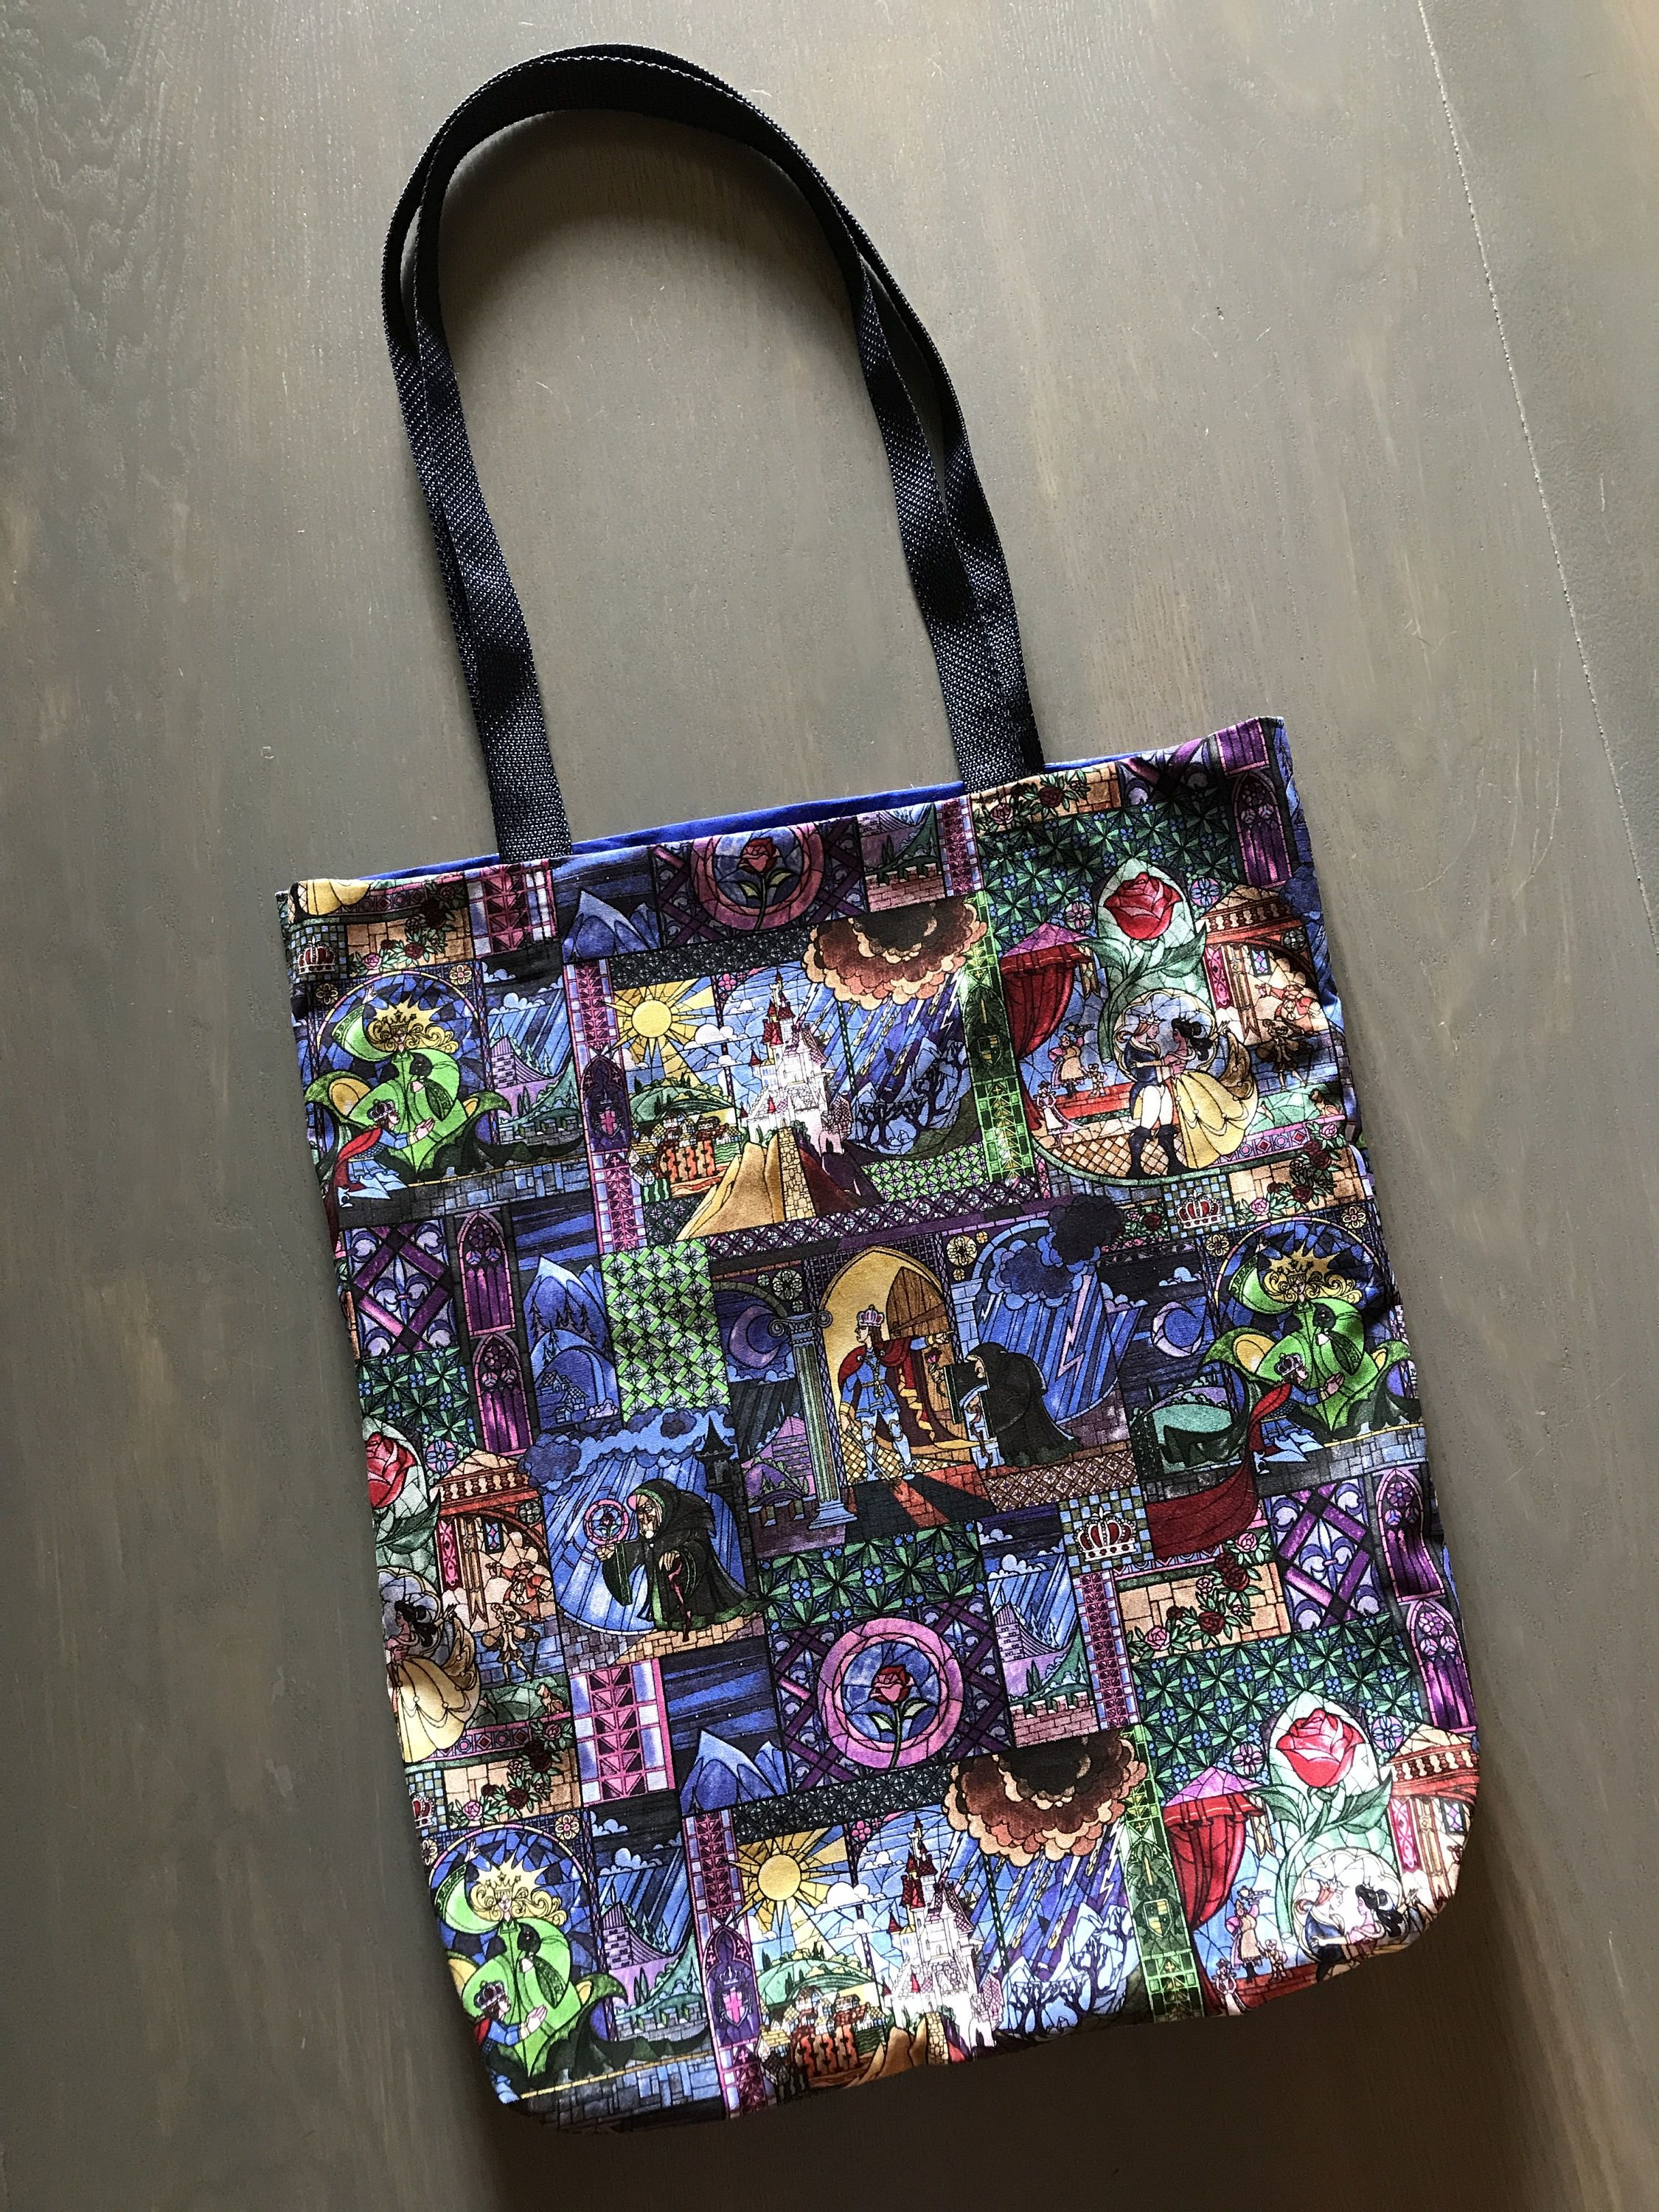 Disney beauty and the beast inspired tote bag travel bag